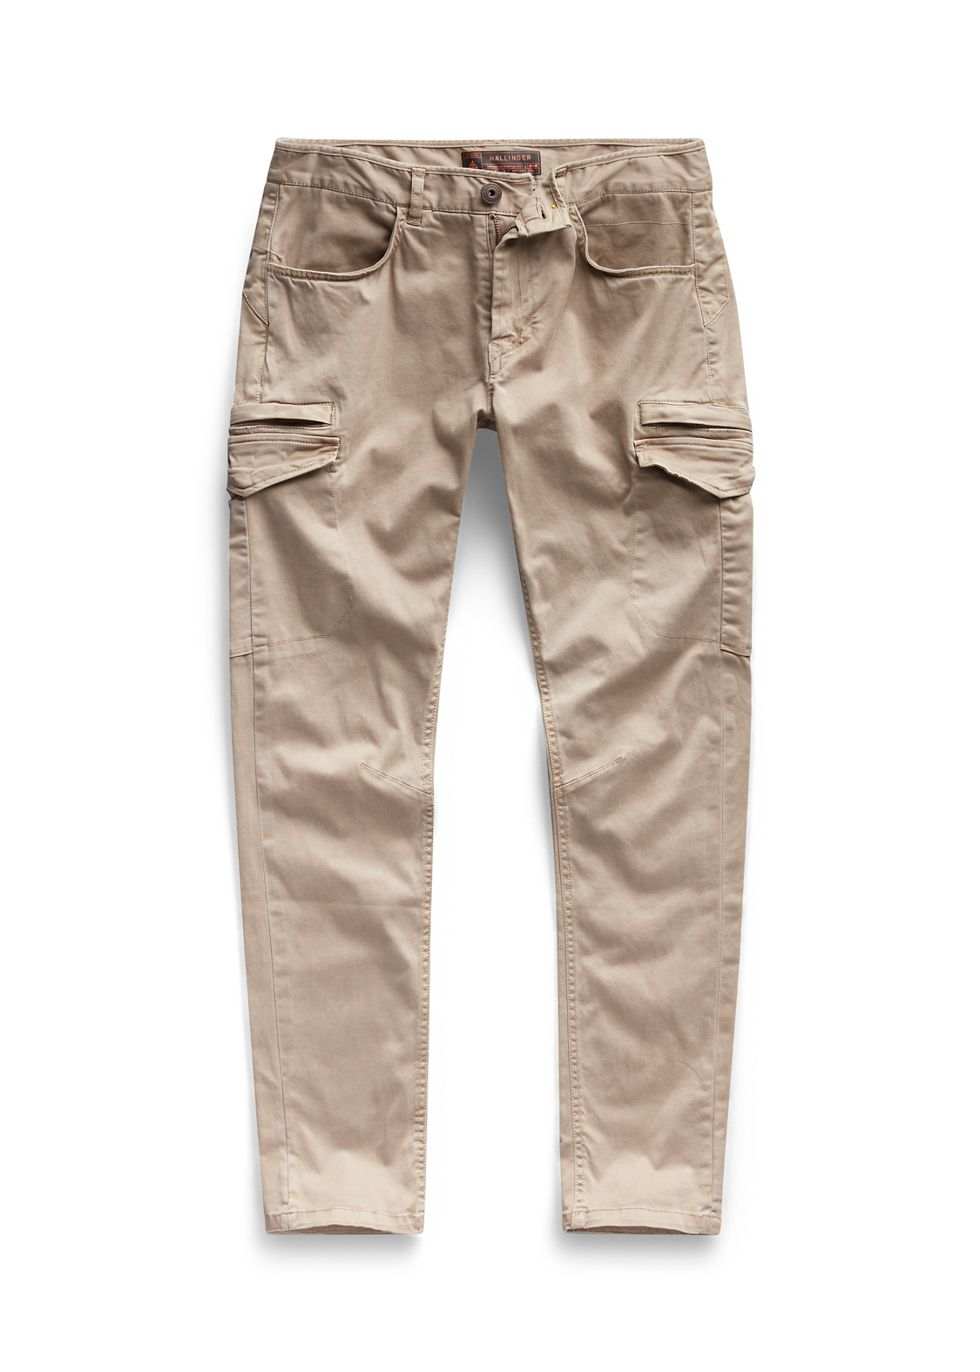 New Harper Cargo Pants | The Sting